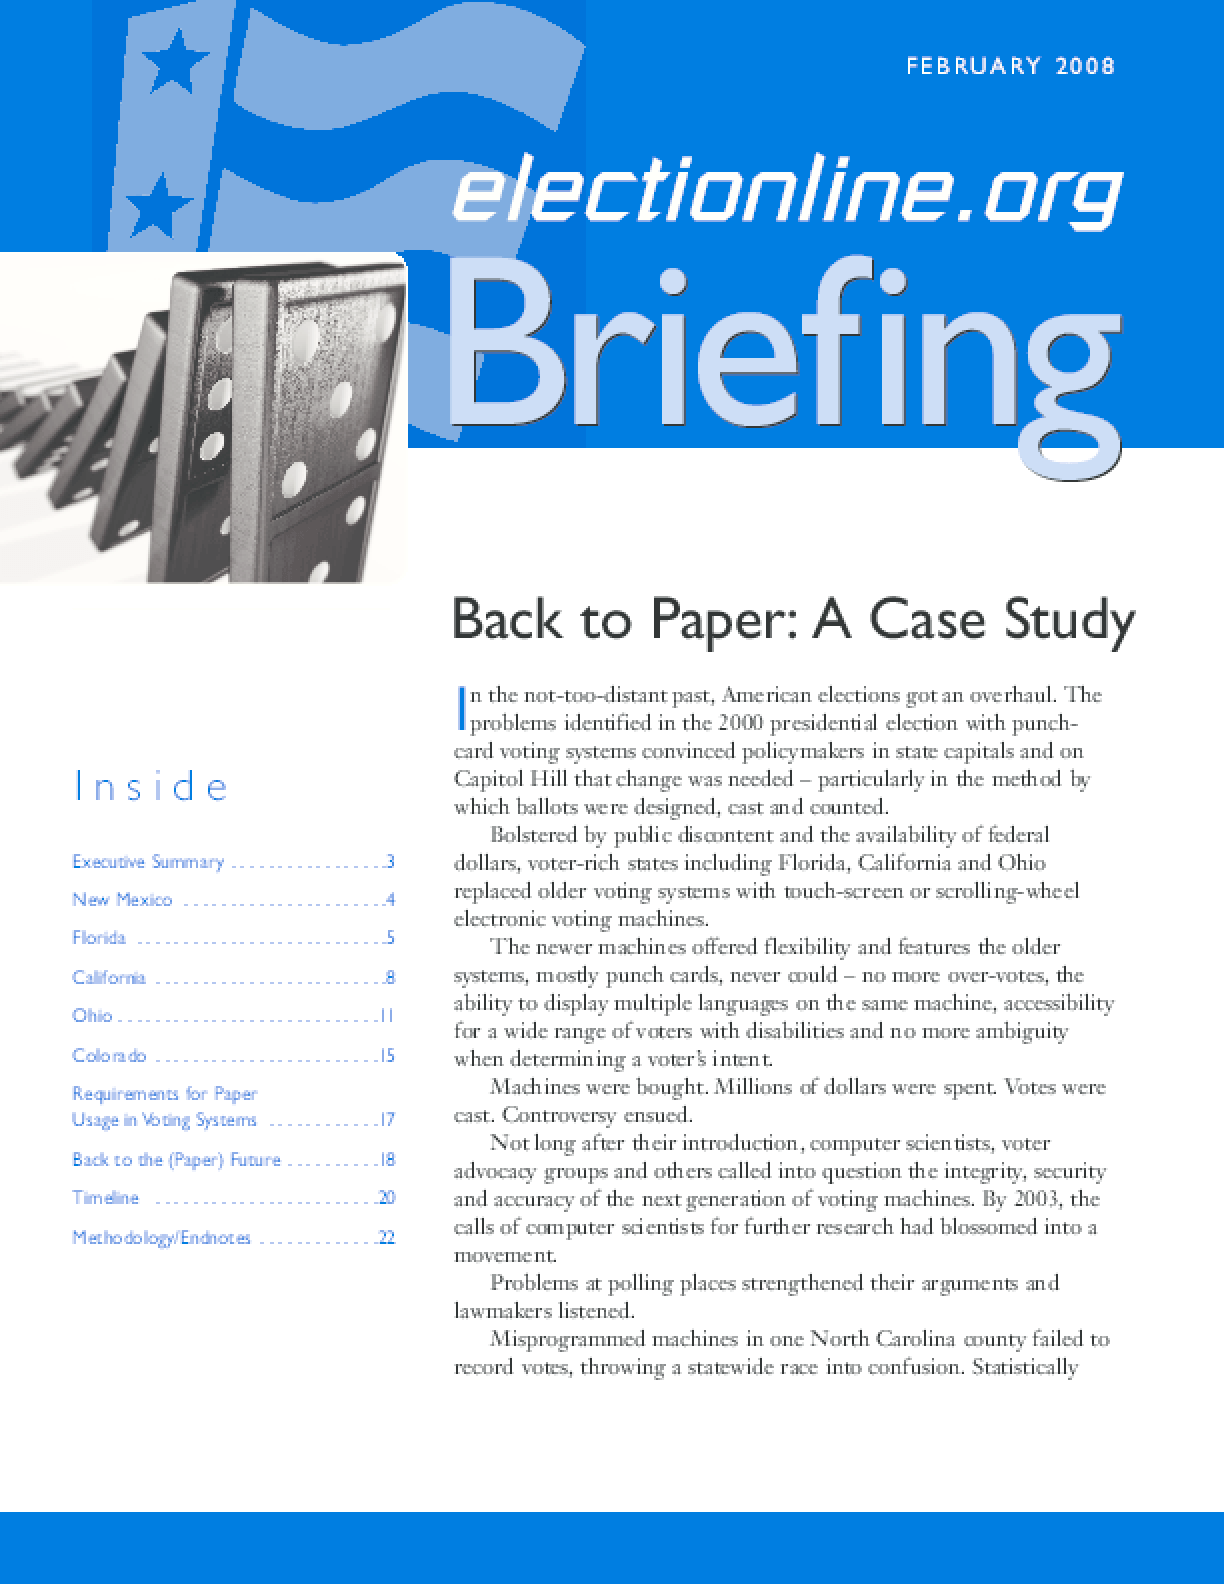 Back to Paper: A Case Study